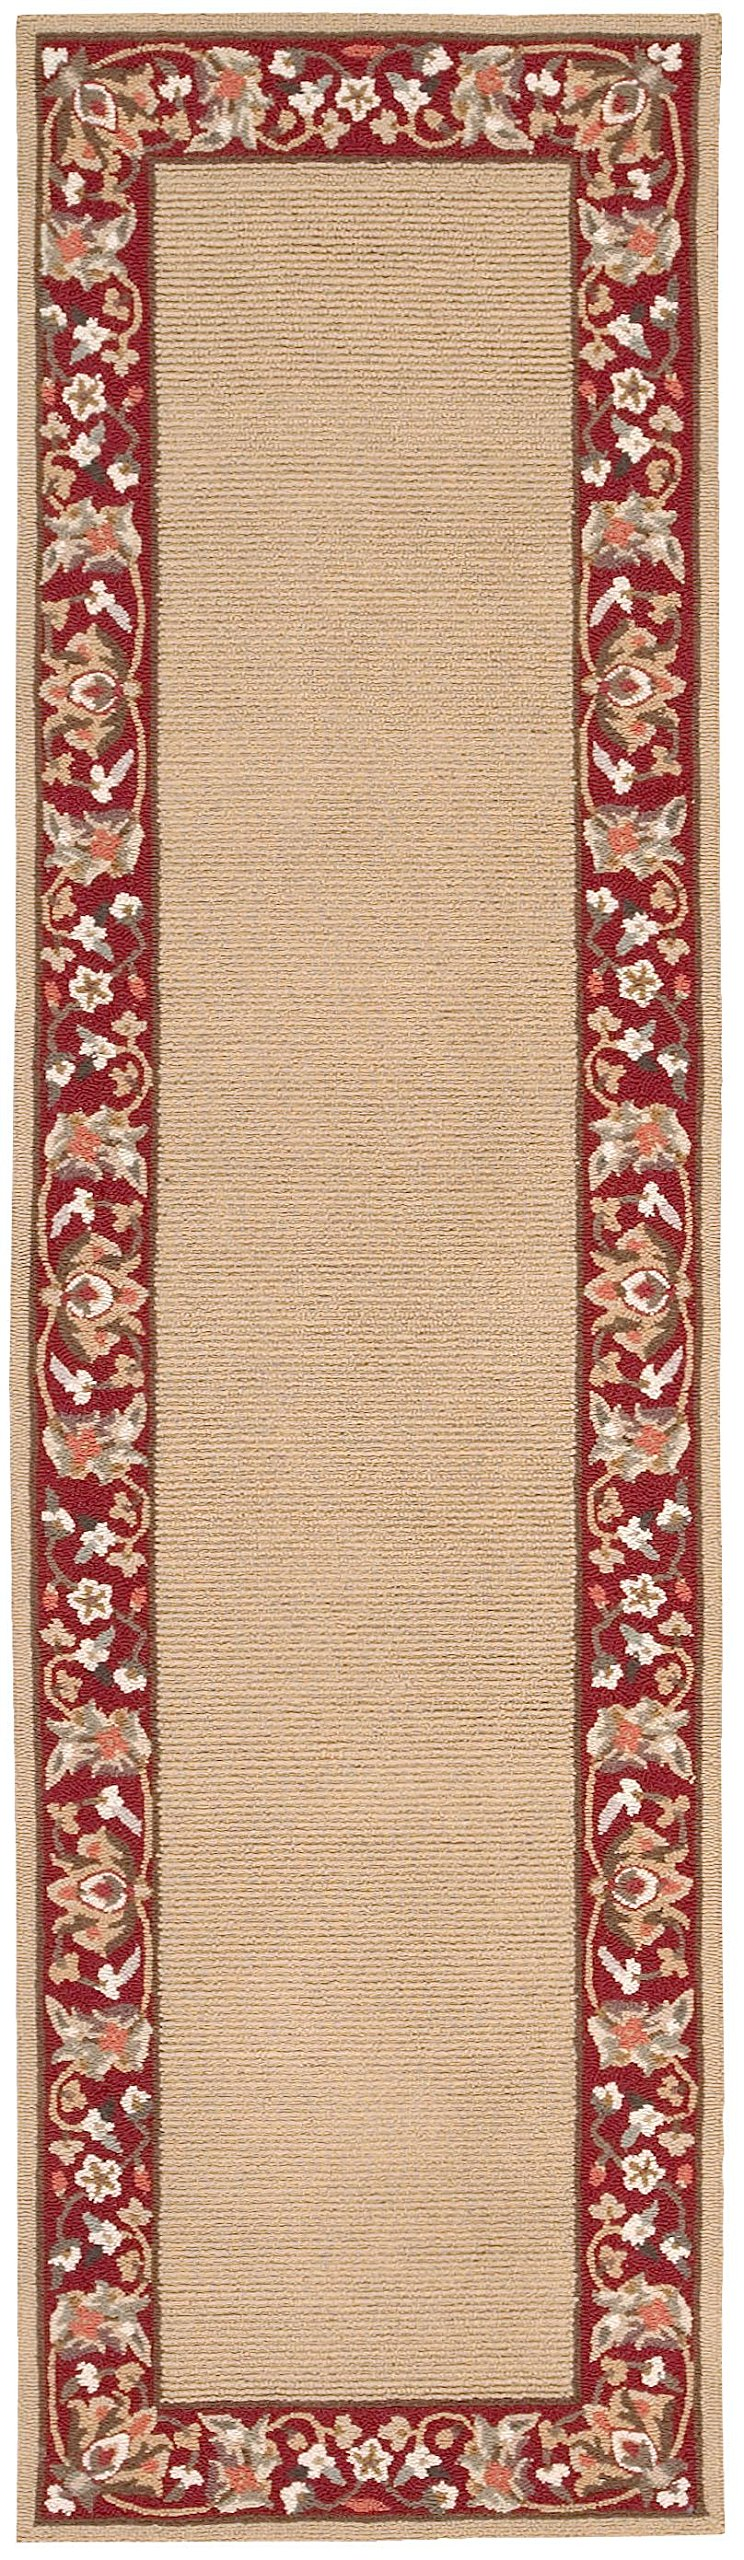 Nourison Country Heritage (H801) Gold Runner Area Rug, 2-Feet 3-Inches by 8-Feet (2'3'' x 8')